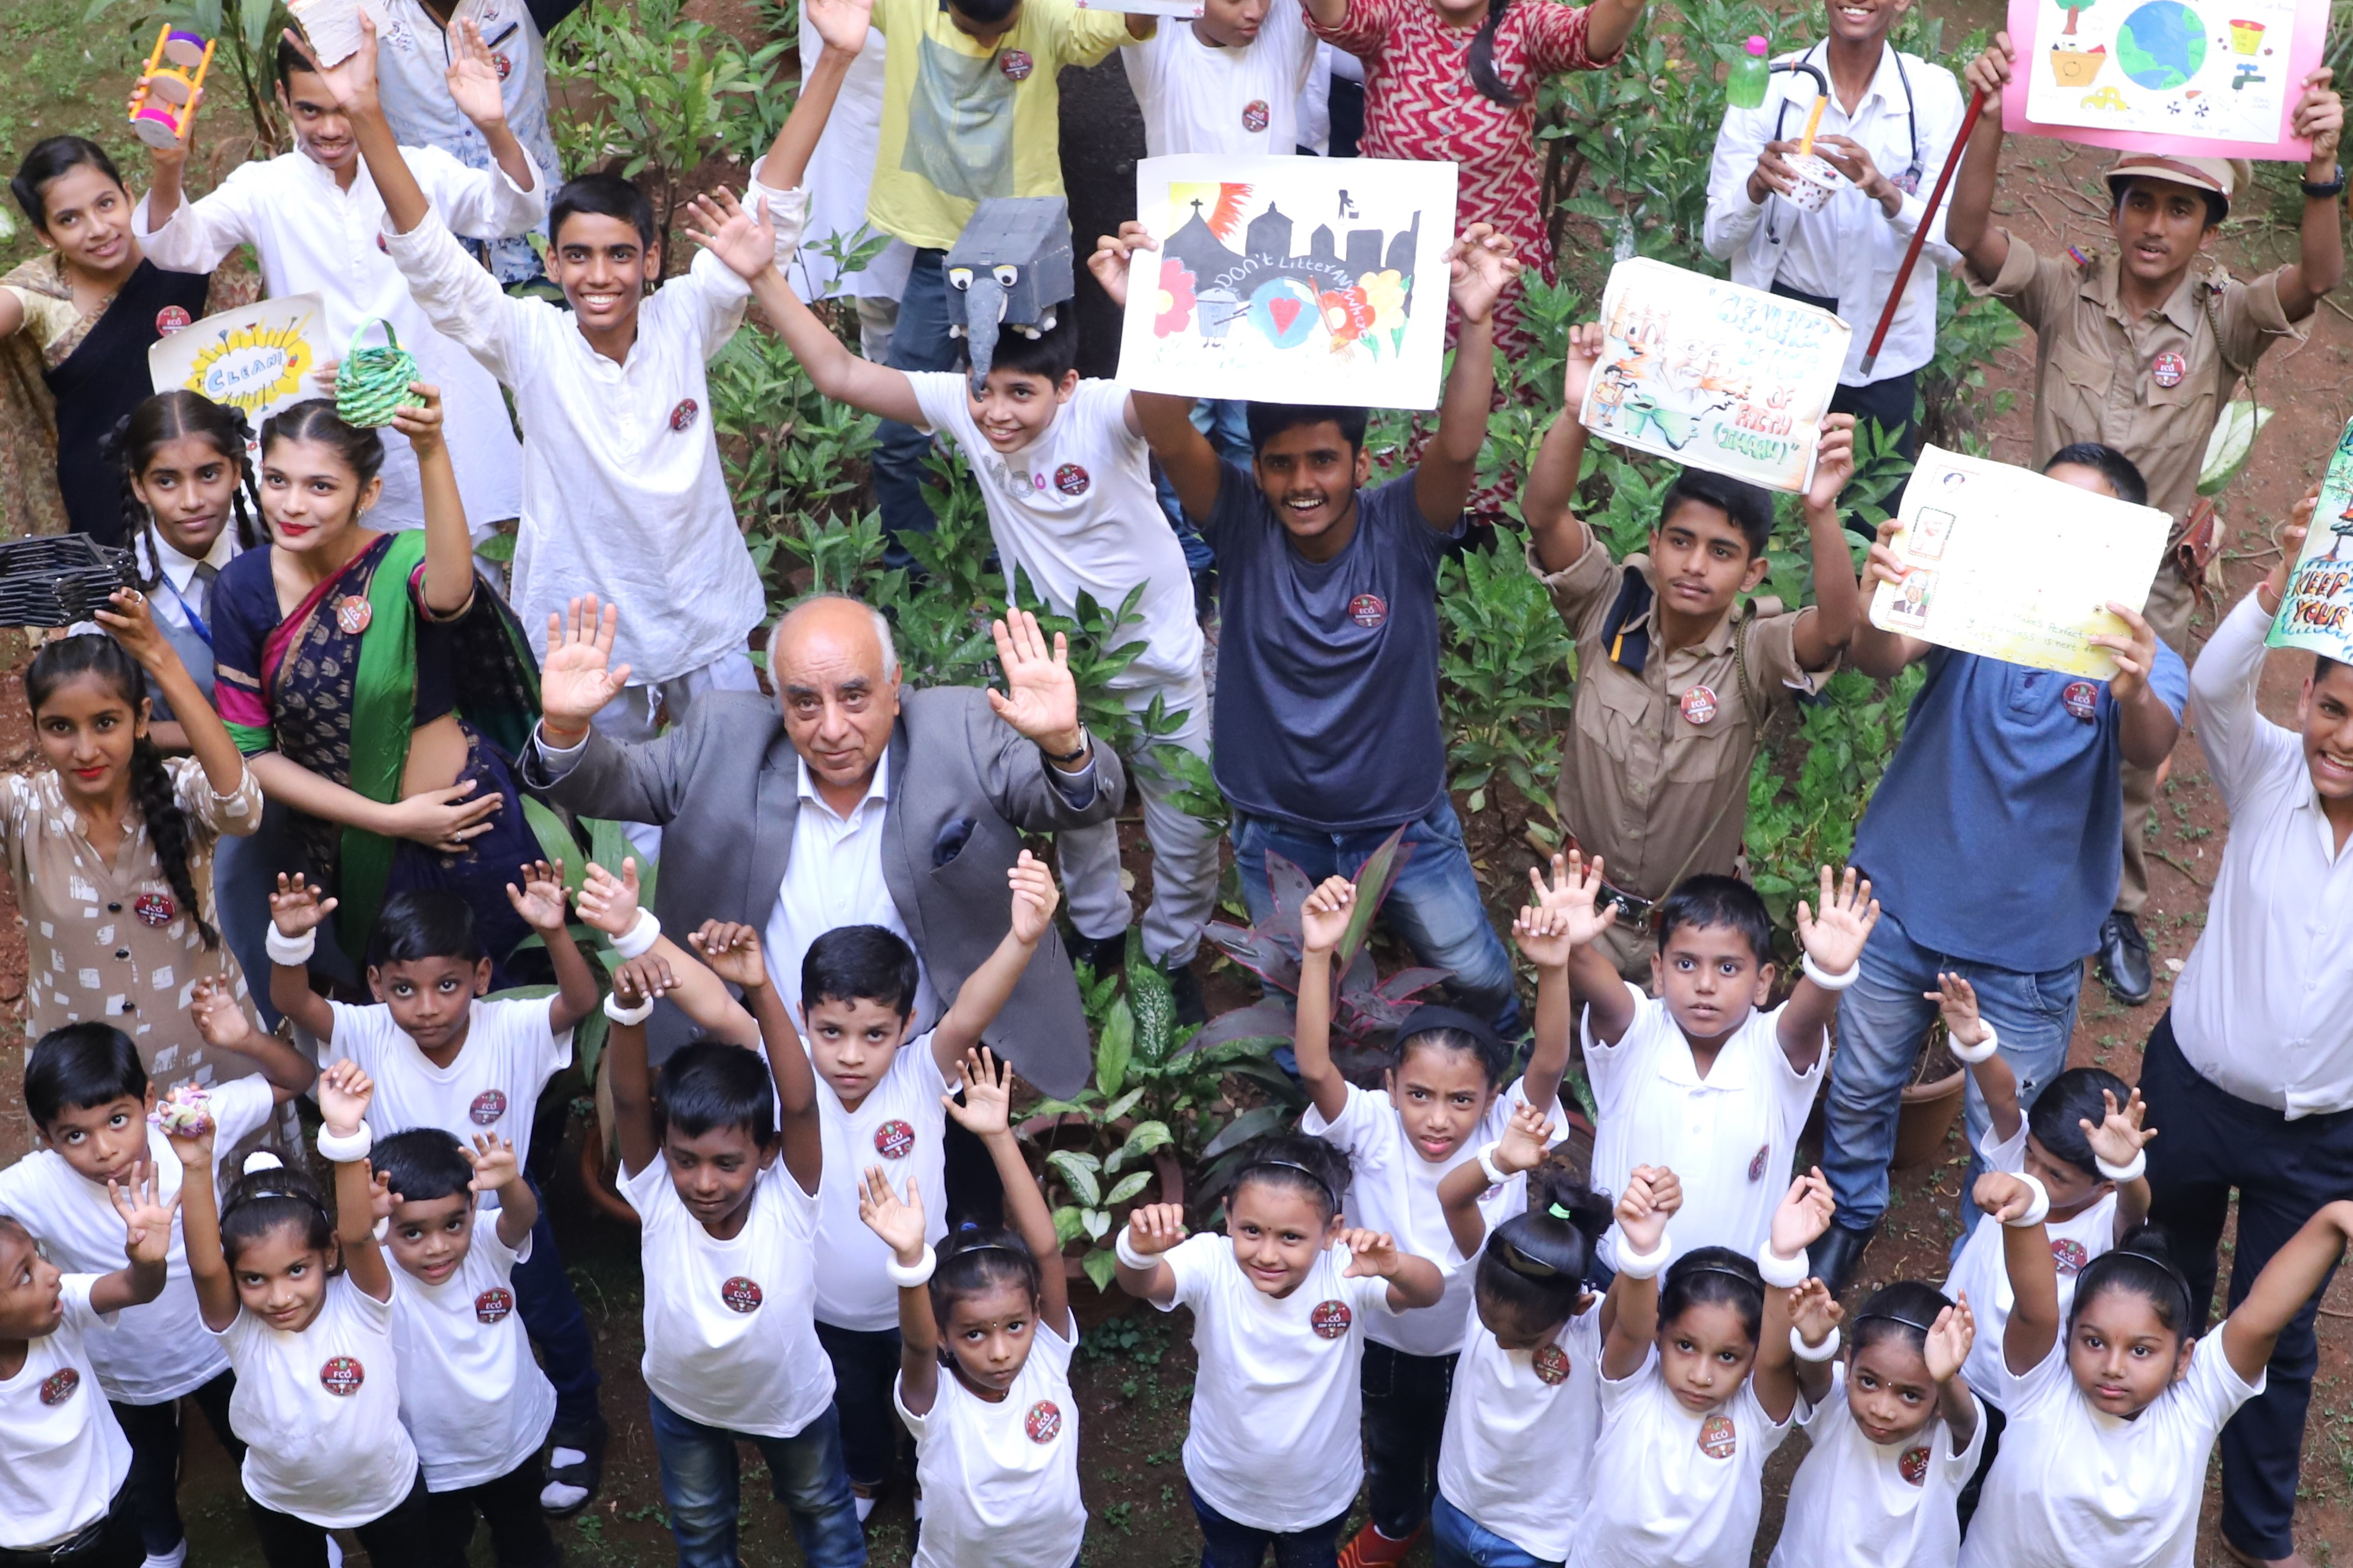 . Arun Nanda, Chairman MHRIL, celebrating with students the sucess of 'Phenk Mat Mumbai' campaign .jpg